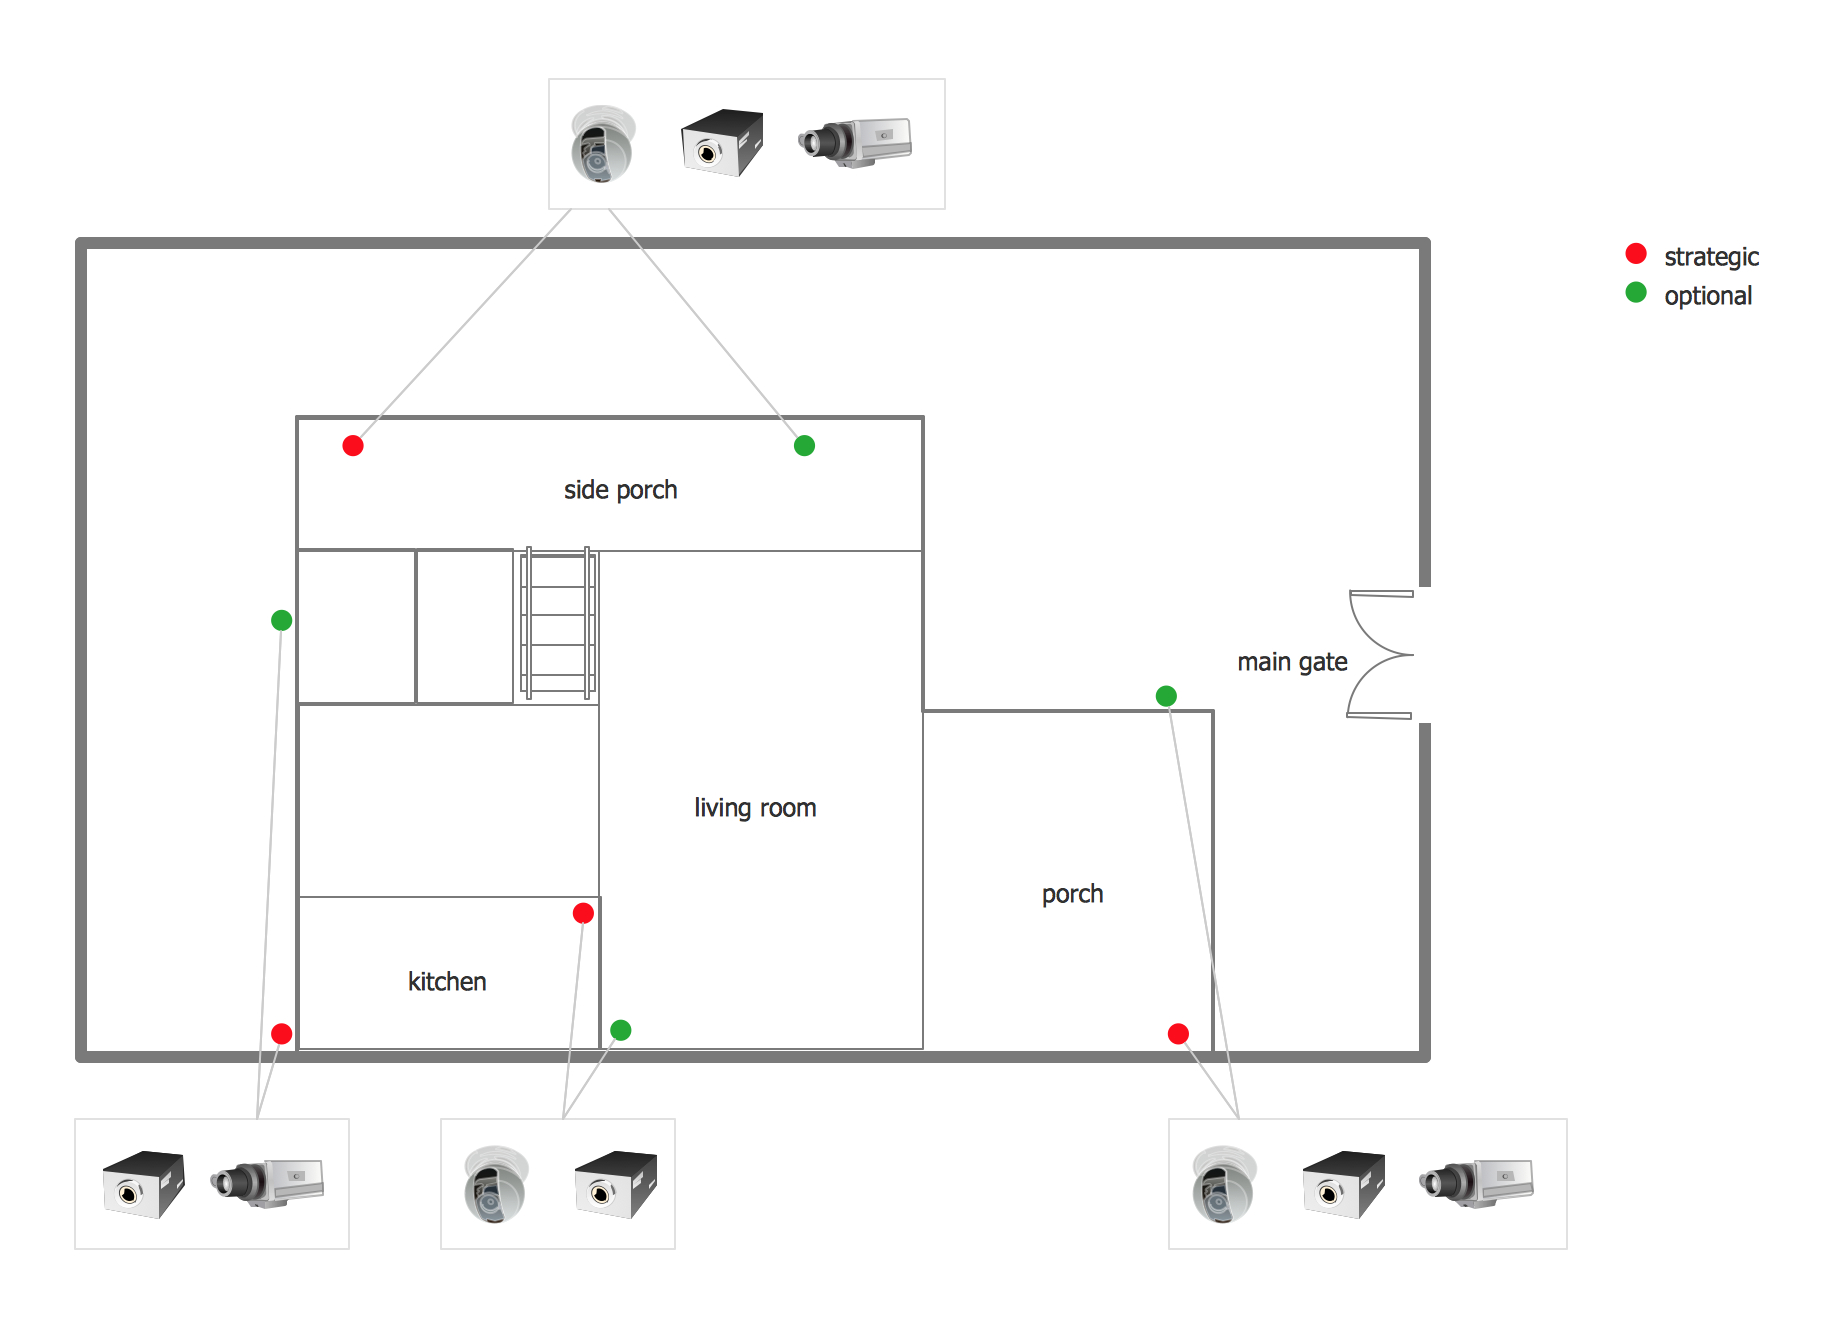 How To Create Cctv Network Diagram | Cctv Surveillance System - Cctv Camera Wiring Diagram